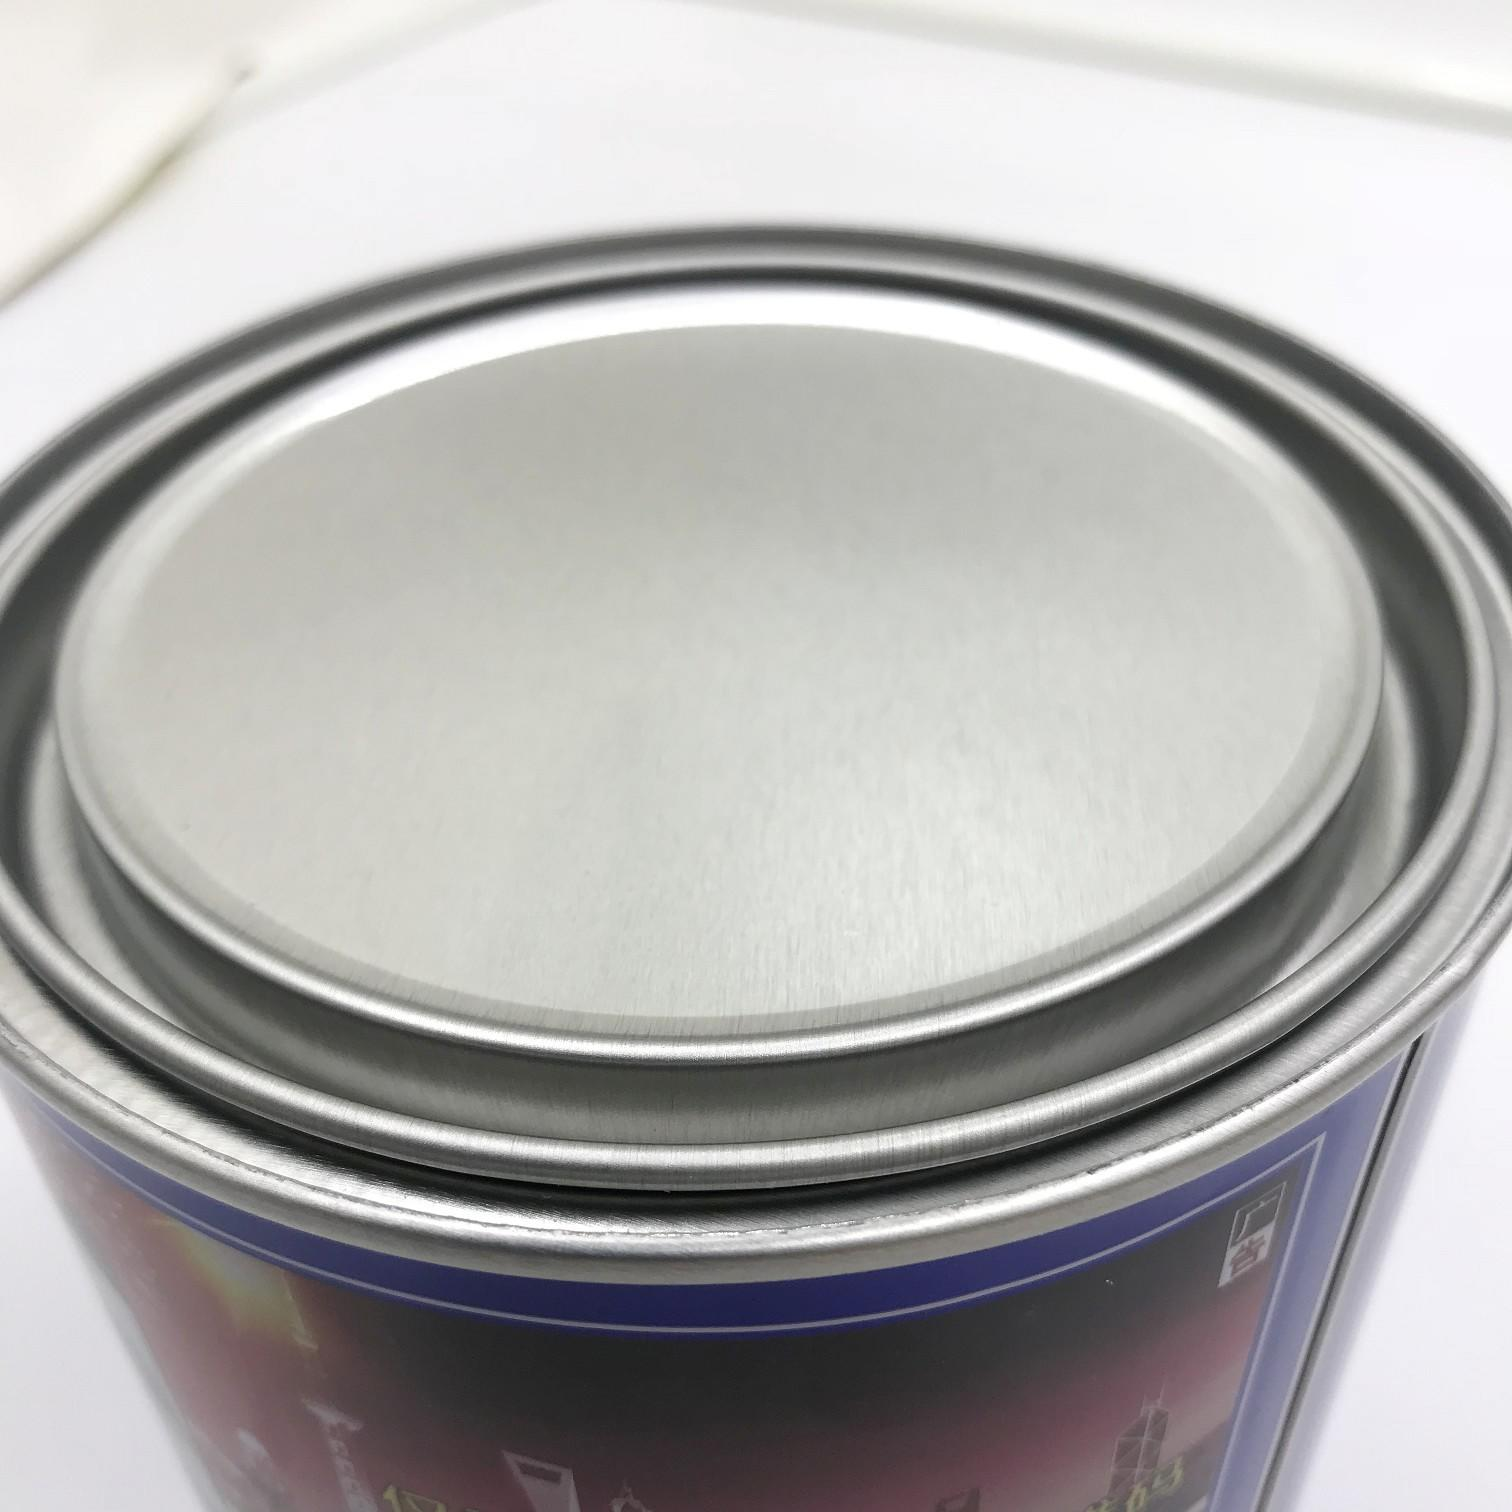 1K China Car Paint Manufacturer Professional Matt Violet Purple Color Liquid Base Chrome Paint For Car Body Repair